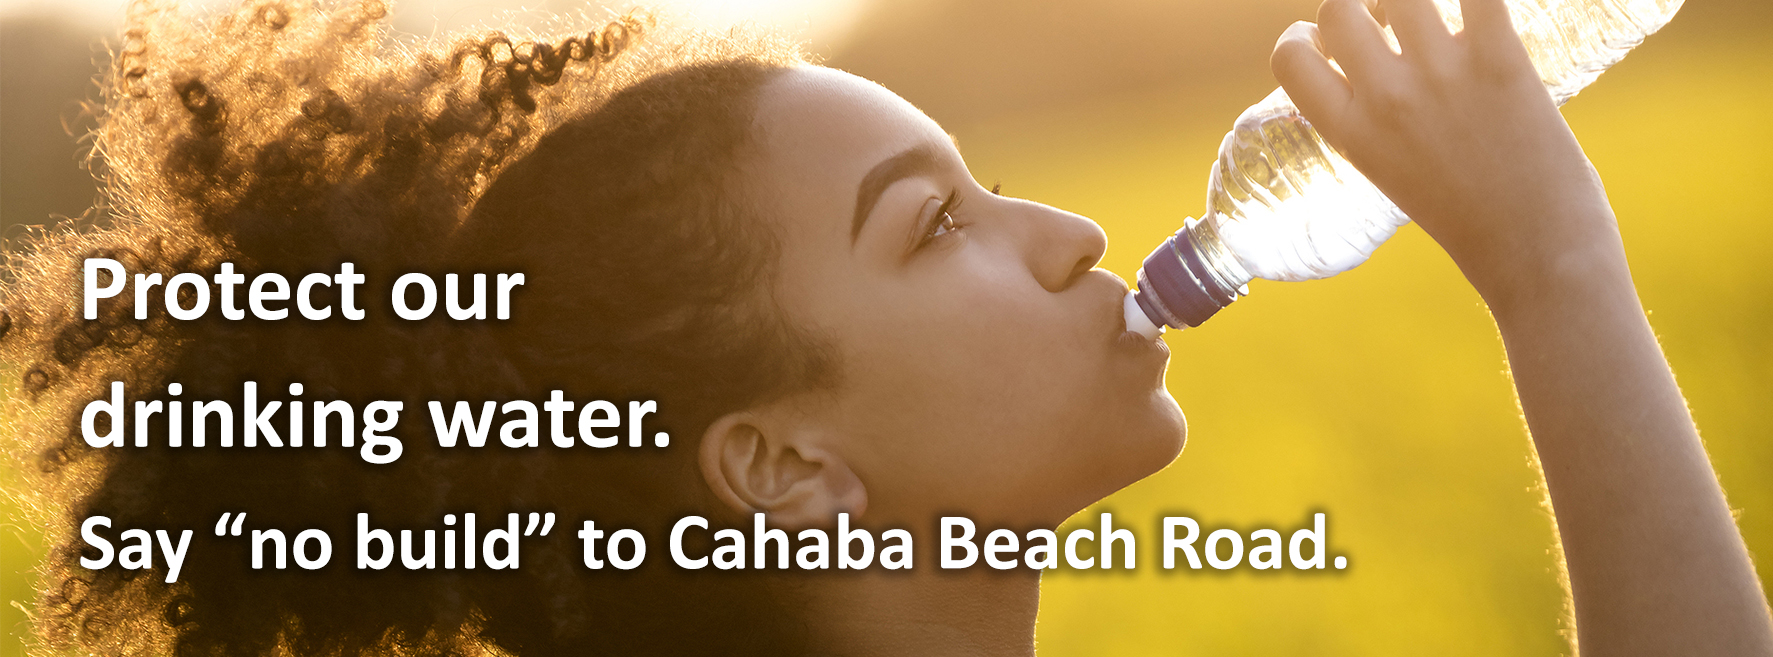 Say no build to Cahaba Beach Road.